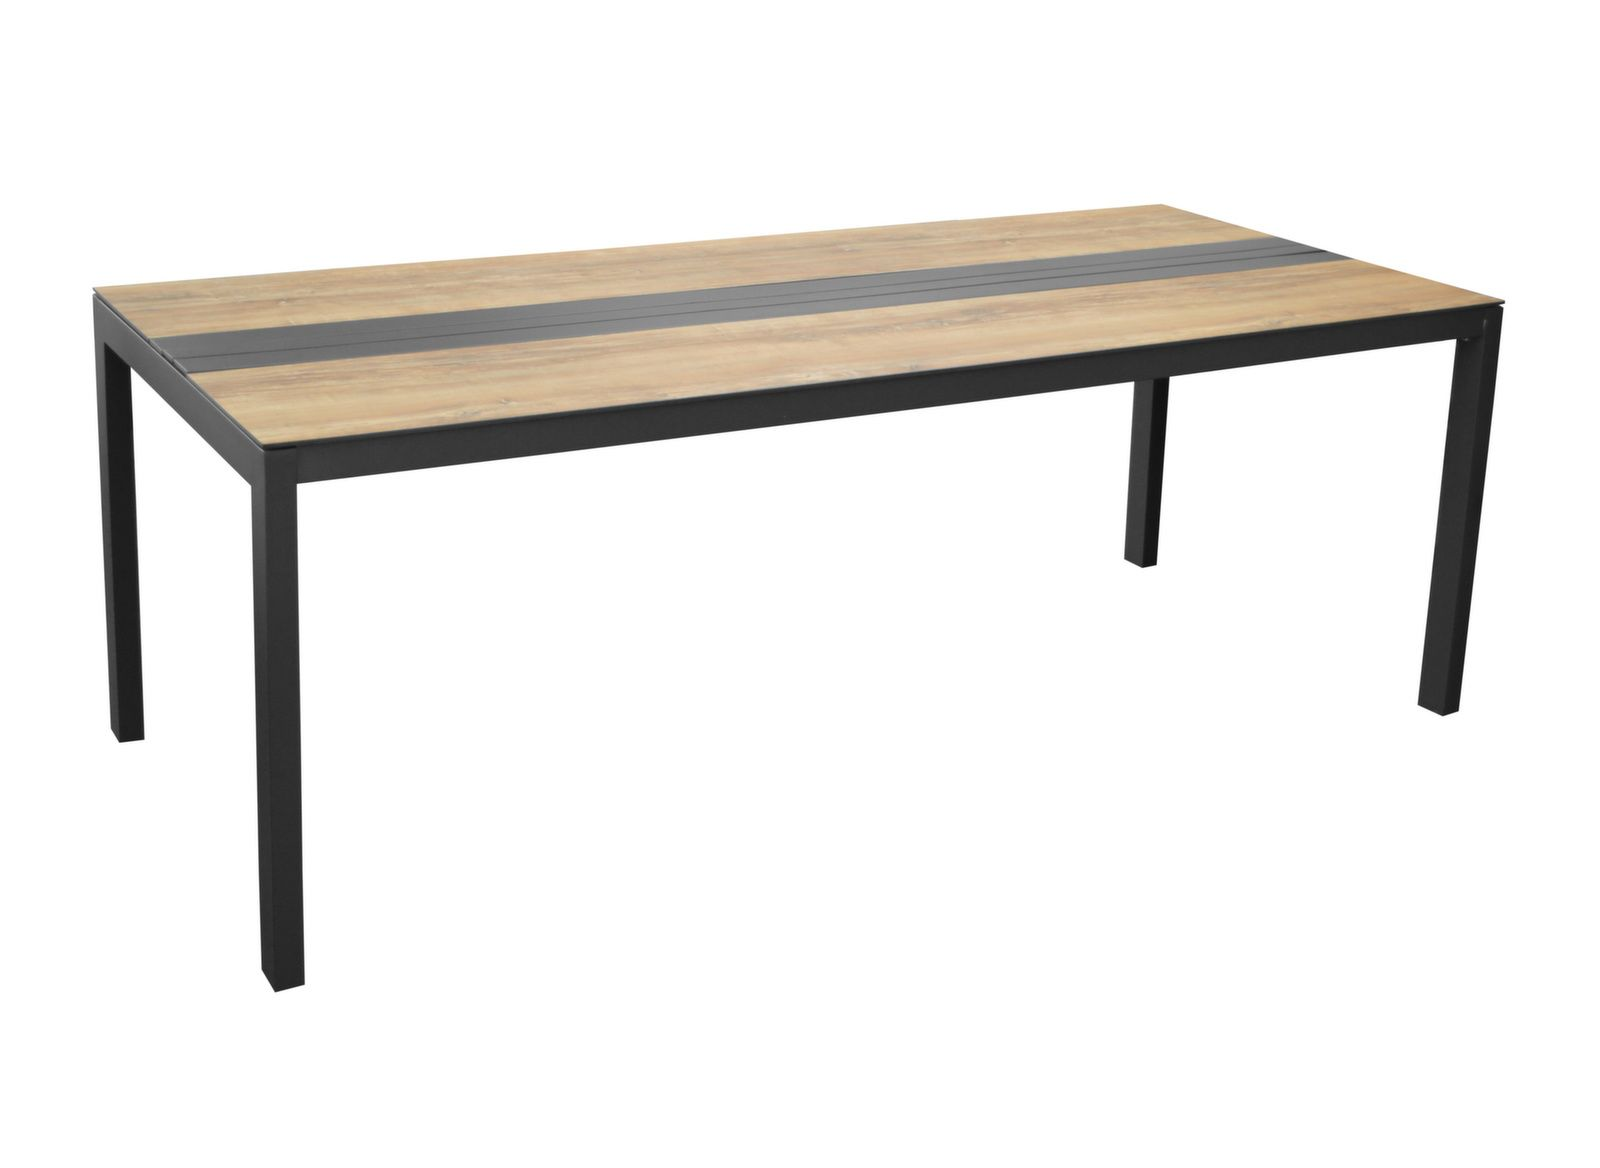 Table Galice 205 cm, Plateau Arpa